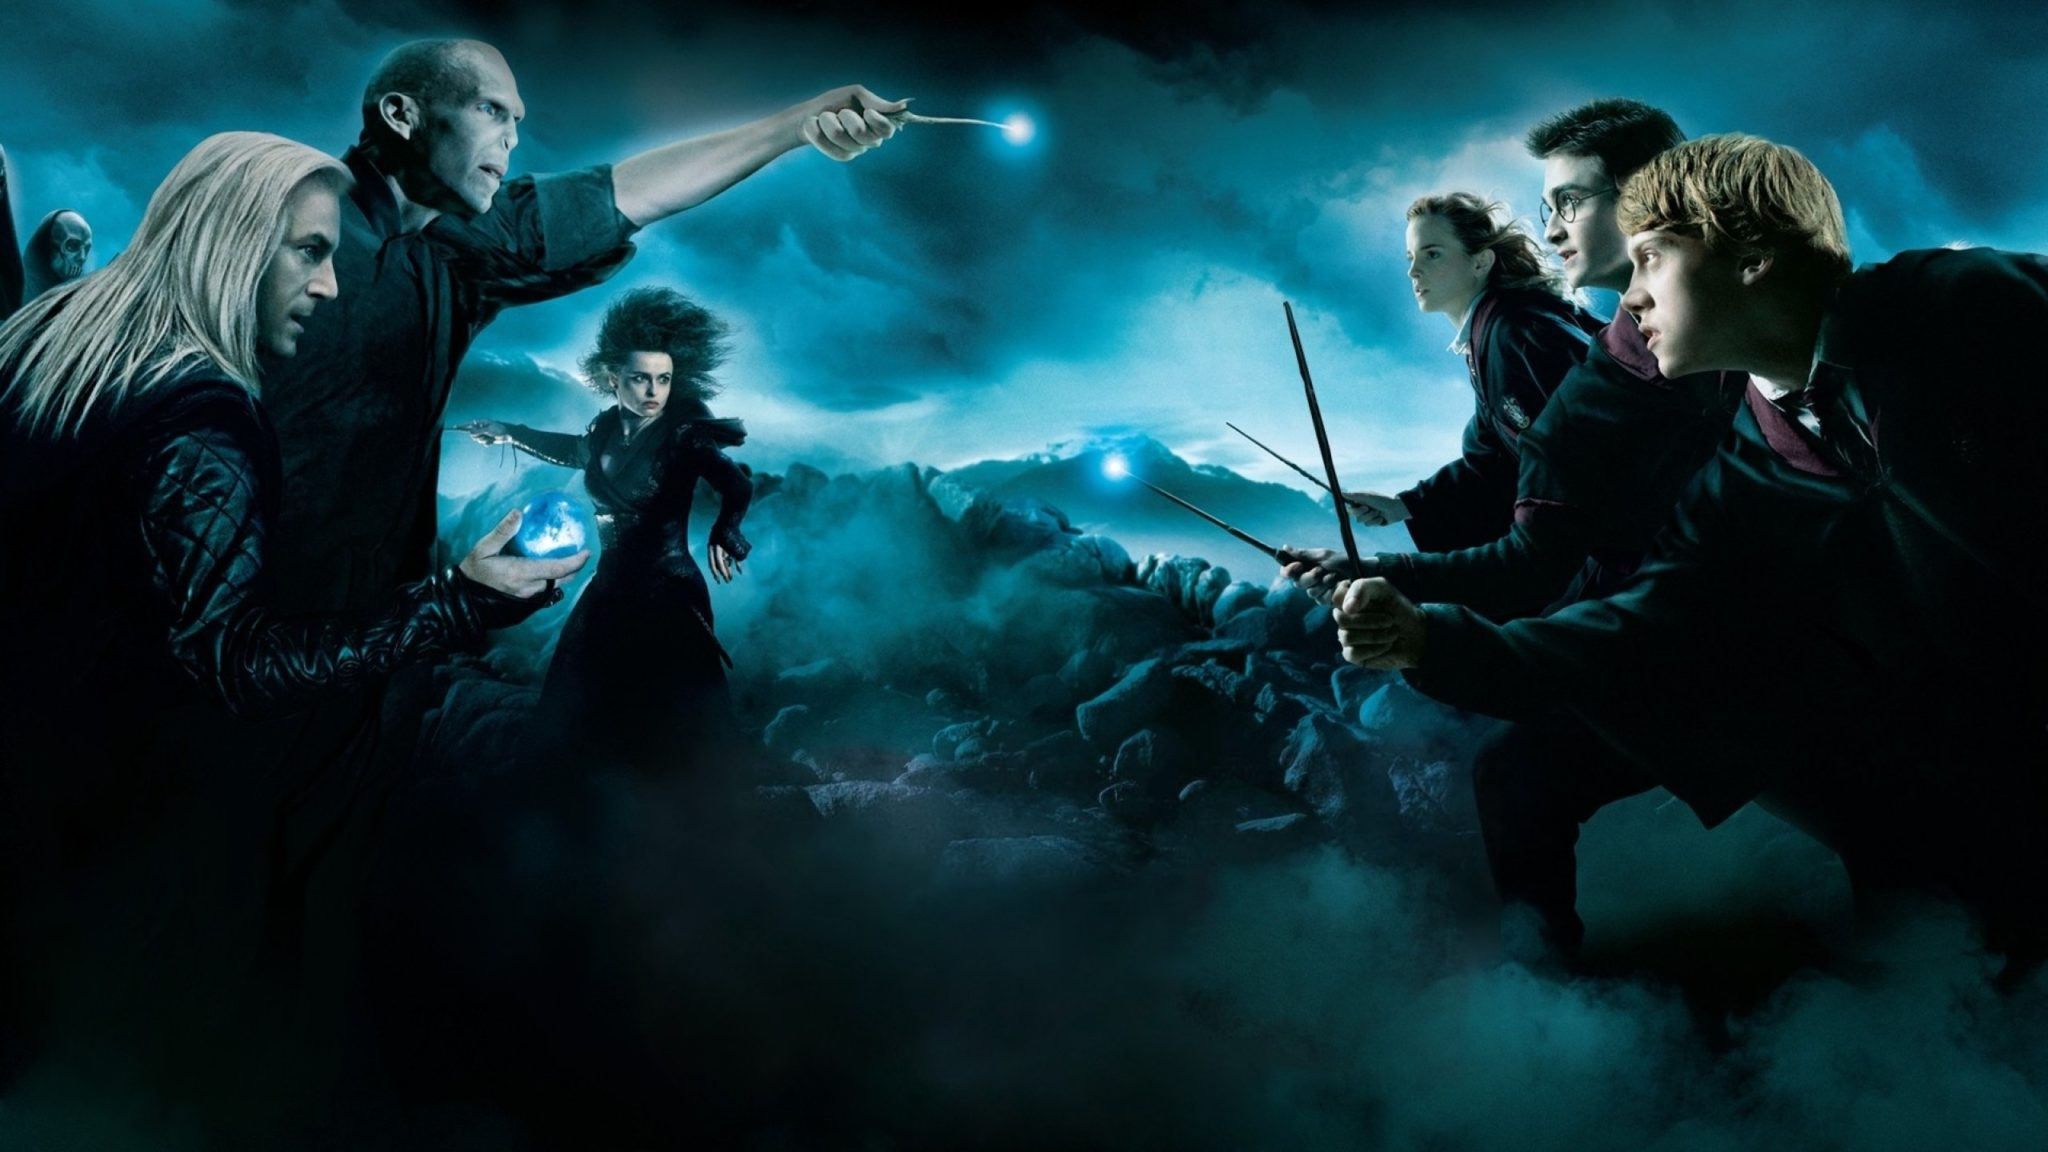 Harry Potter Wizards Unite mobile games for Android and iOS